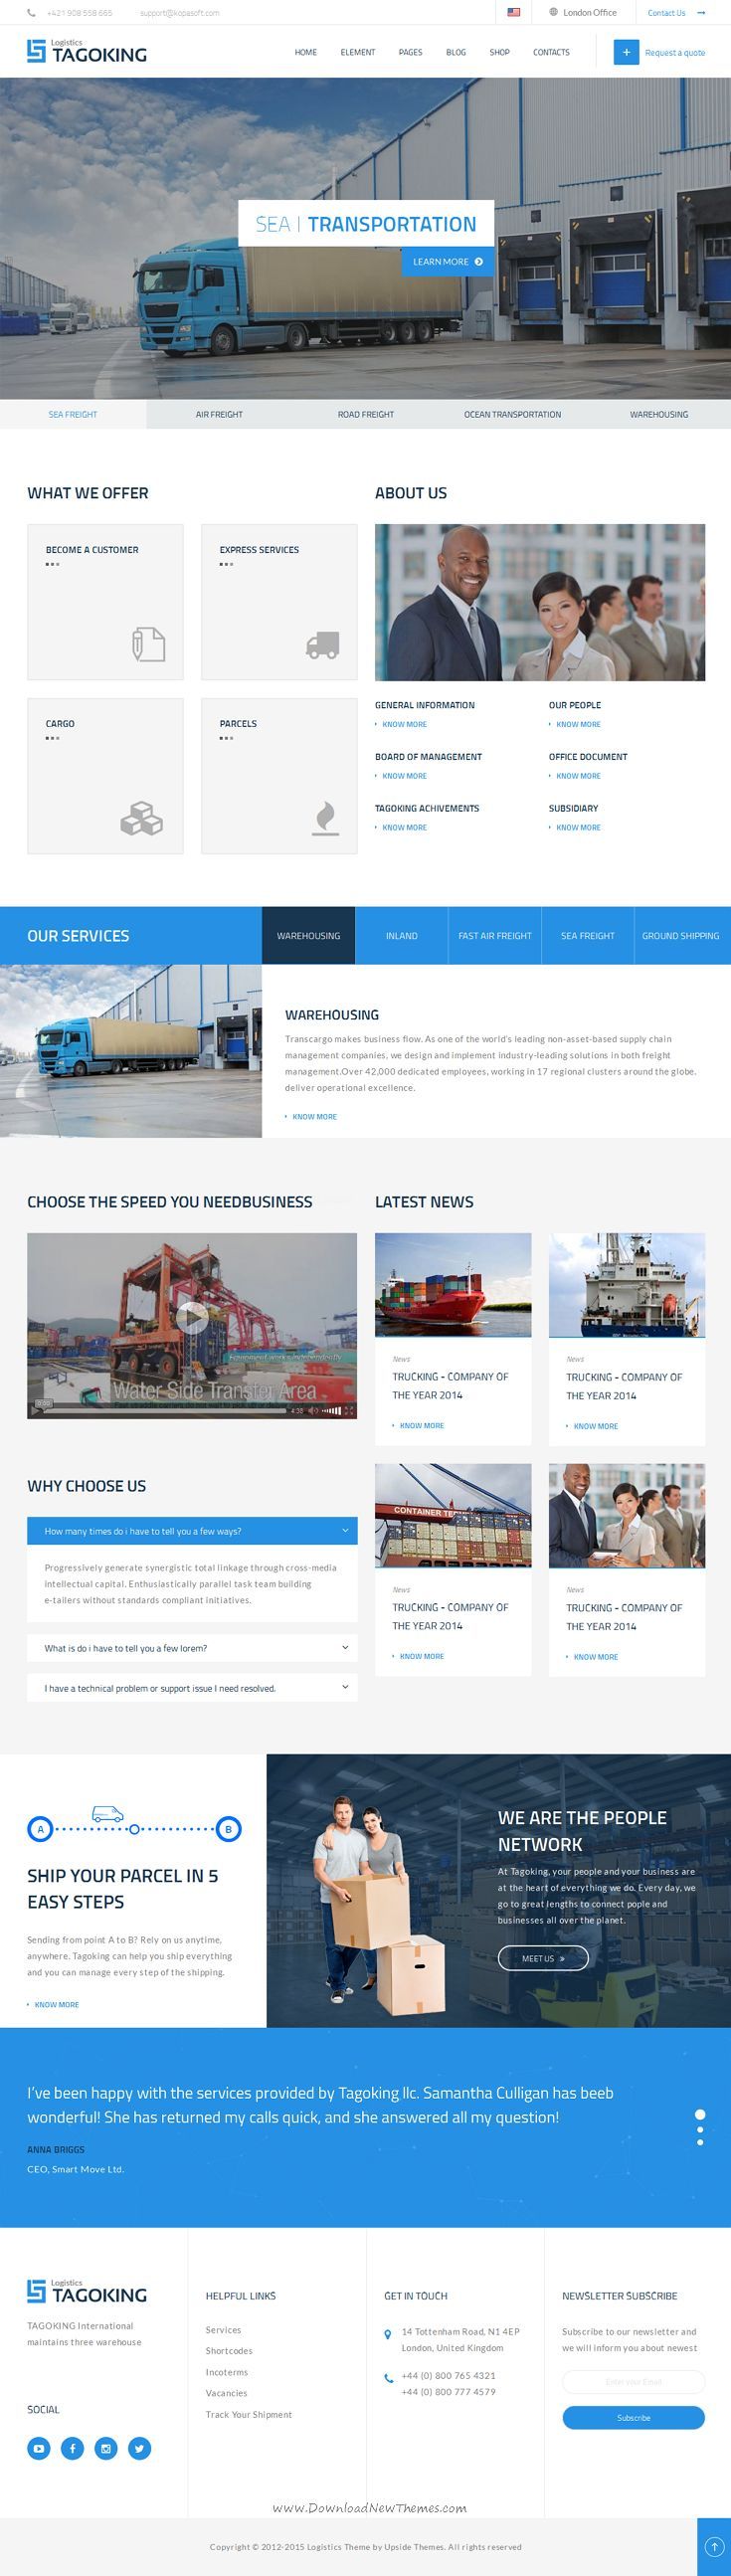 17 best ideas about professional website templates tagoking freight and logistics html5 template html5 templatetemplate website